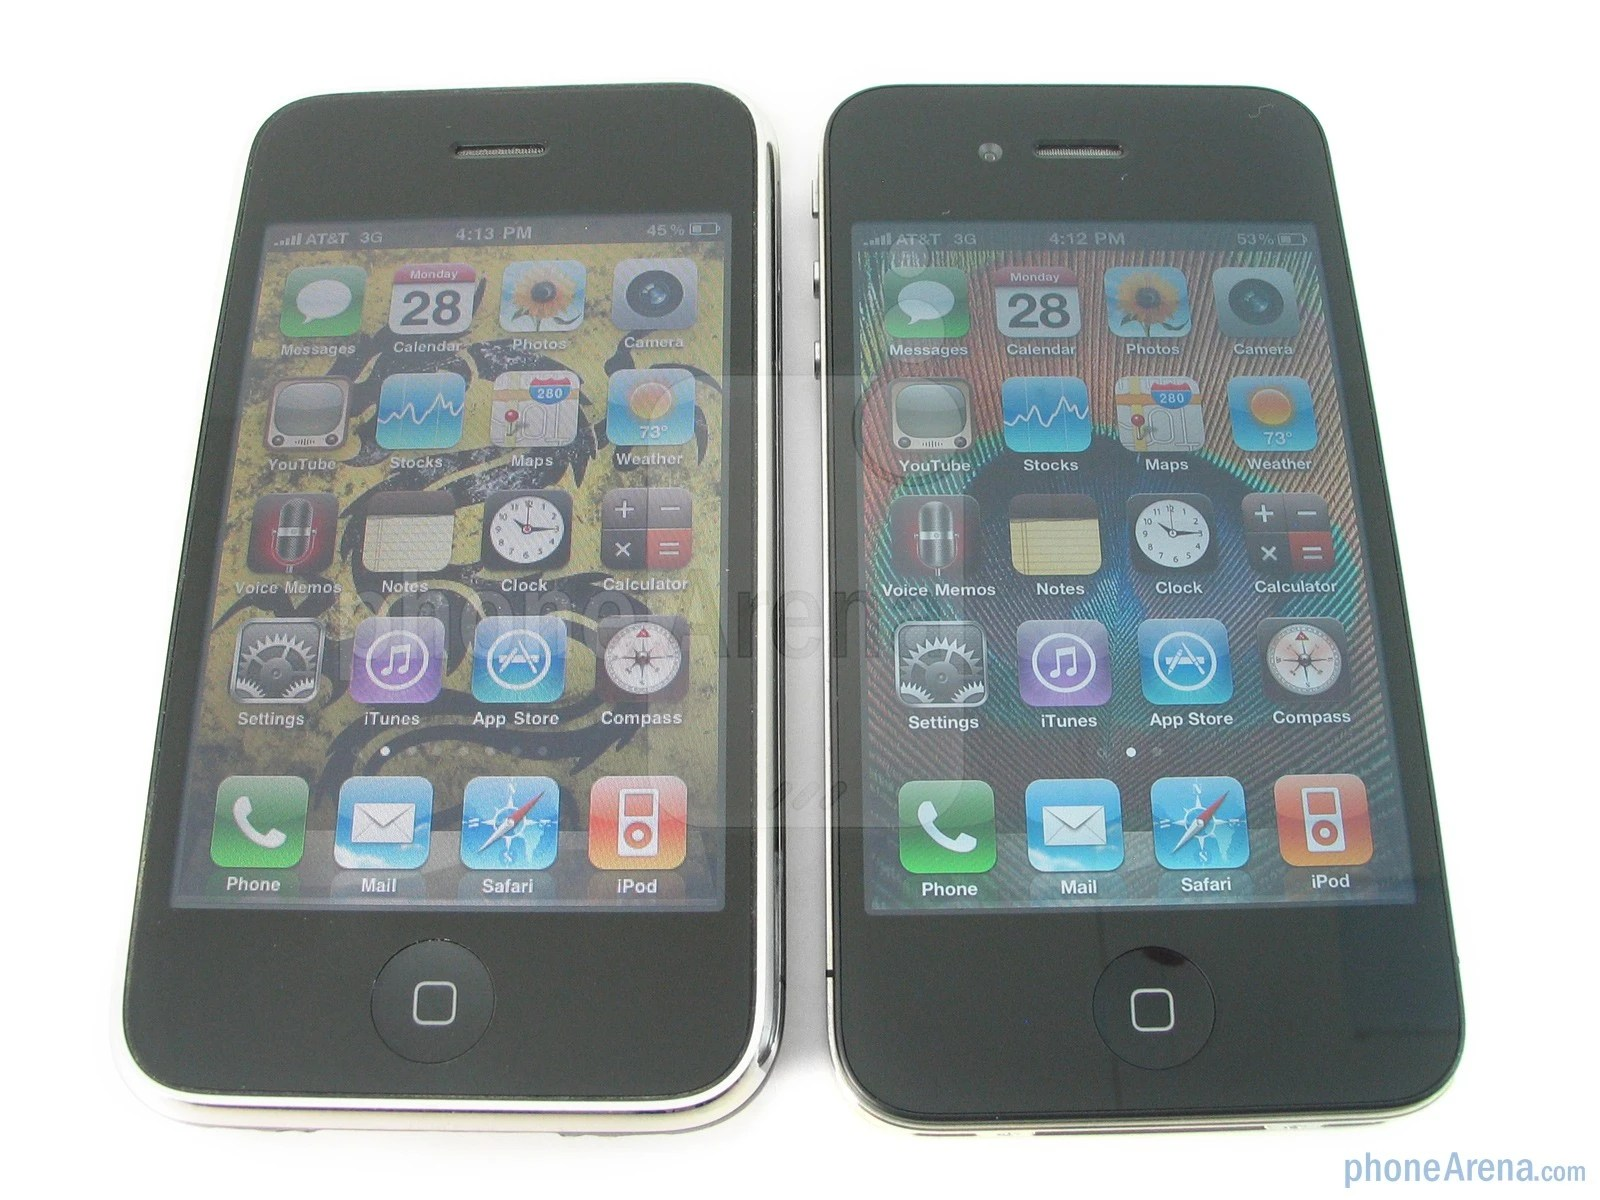 Iphone 3gs Apple Iphone 4 Vs Iphone 3gs Side By Side Phonearena